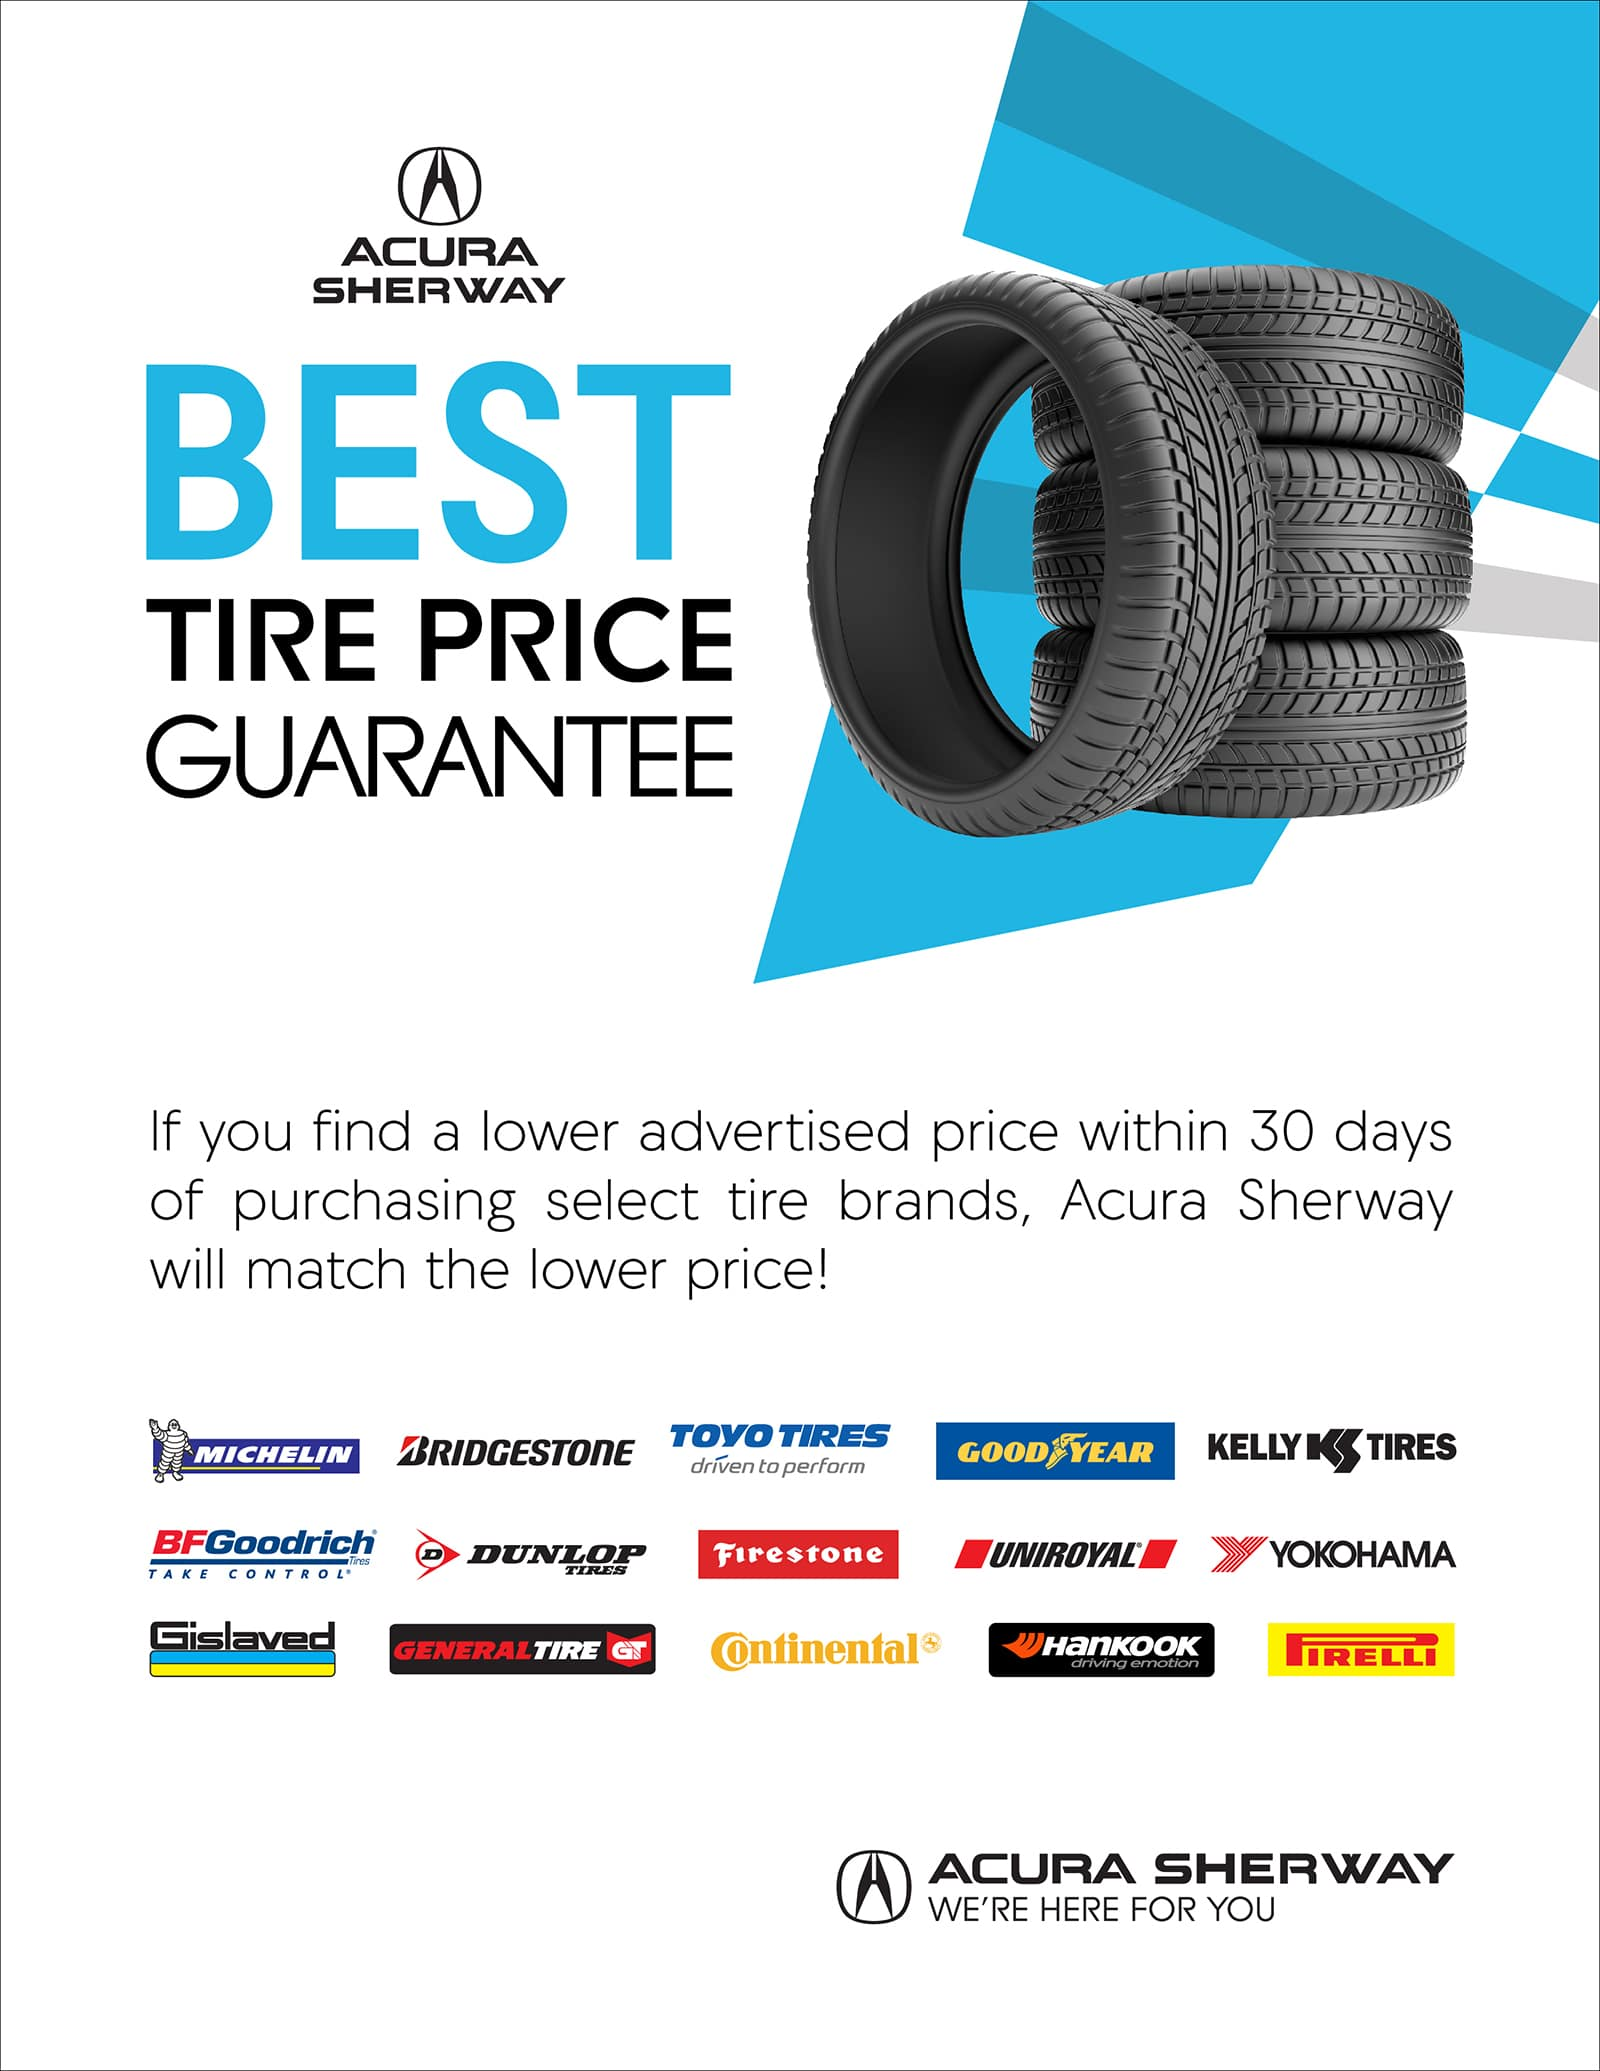 Best Tire Price Guarantee